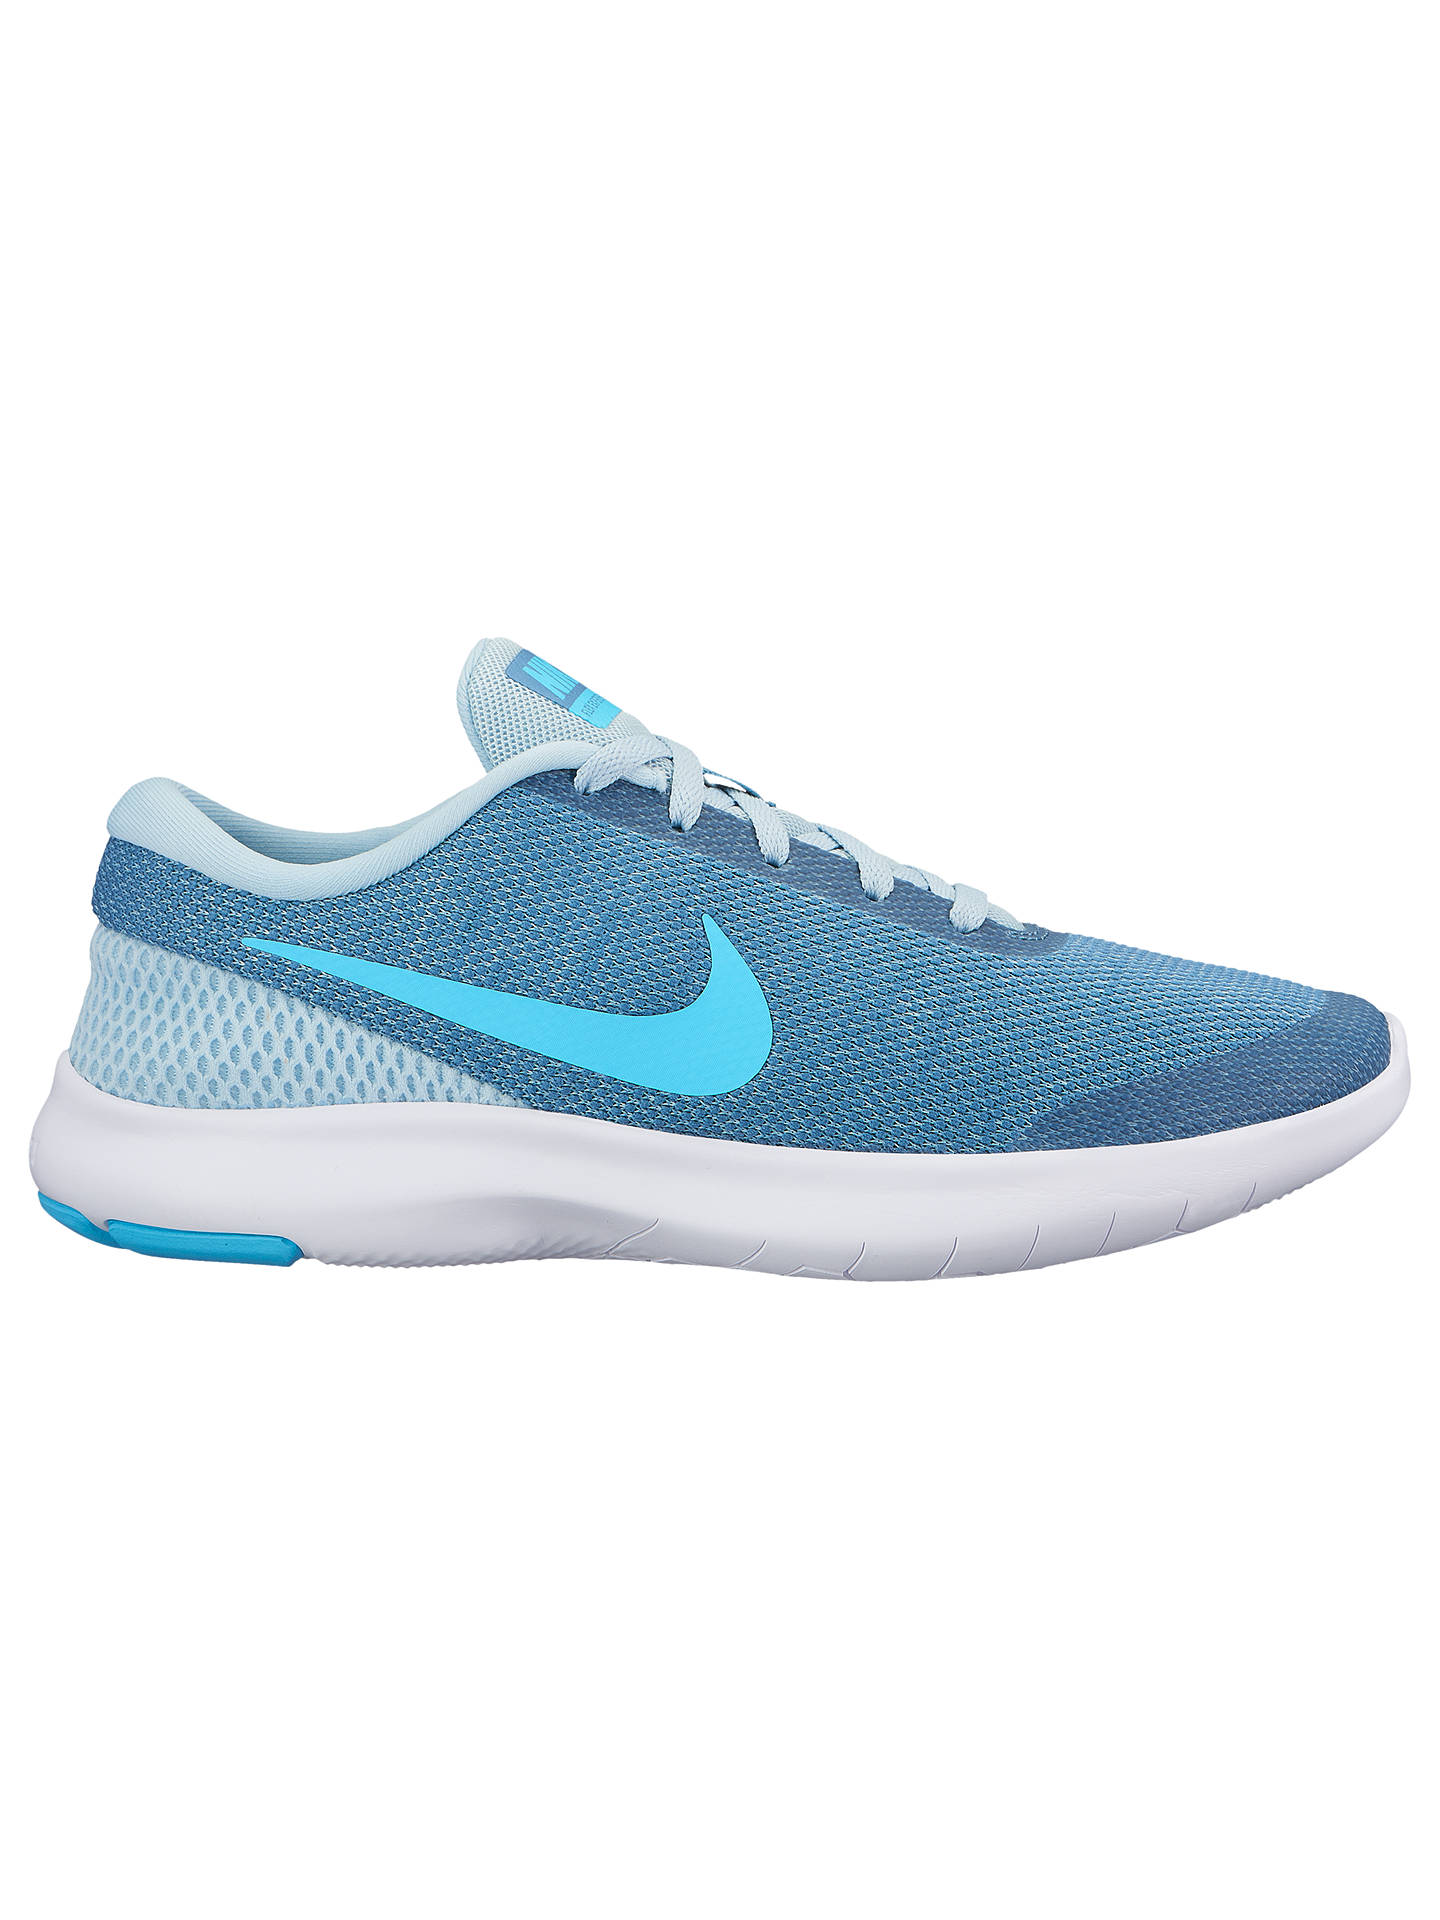 4db337685b Nike Flex Experience RN 7 Women s Running Shoes at John Lewis   Partners